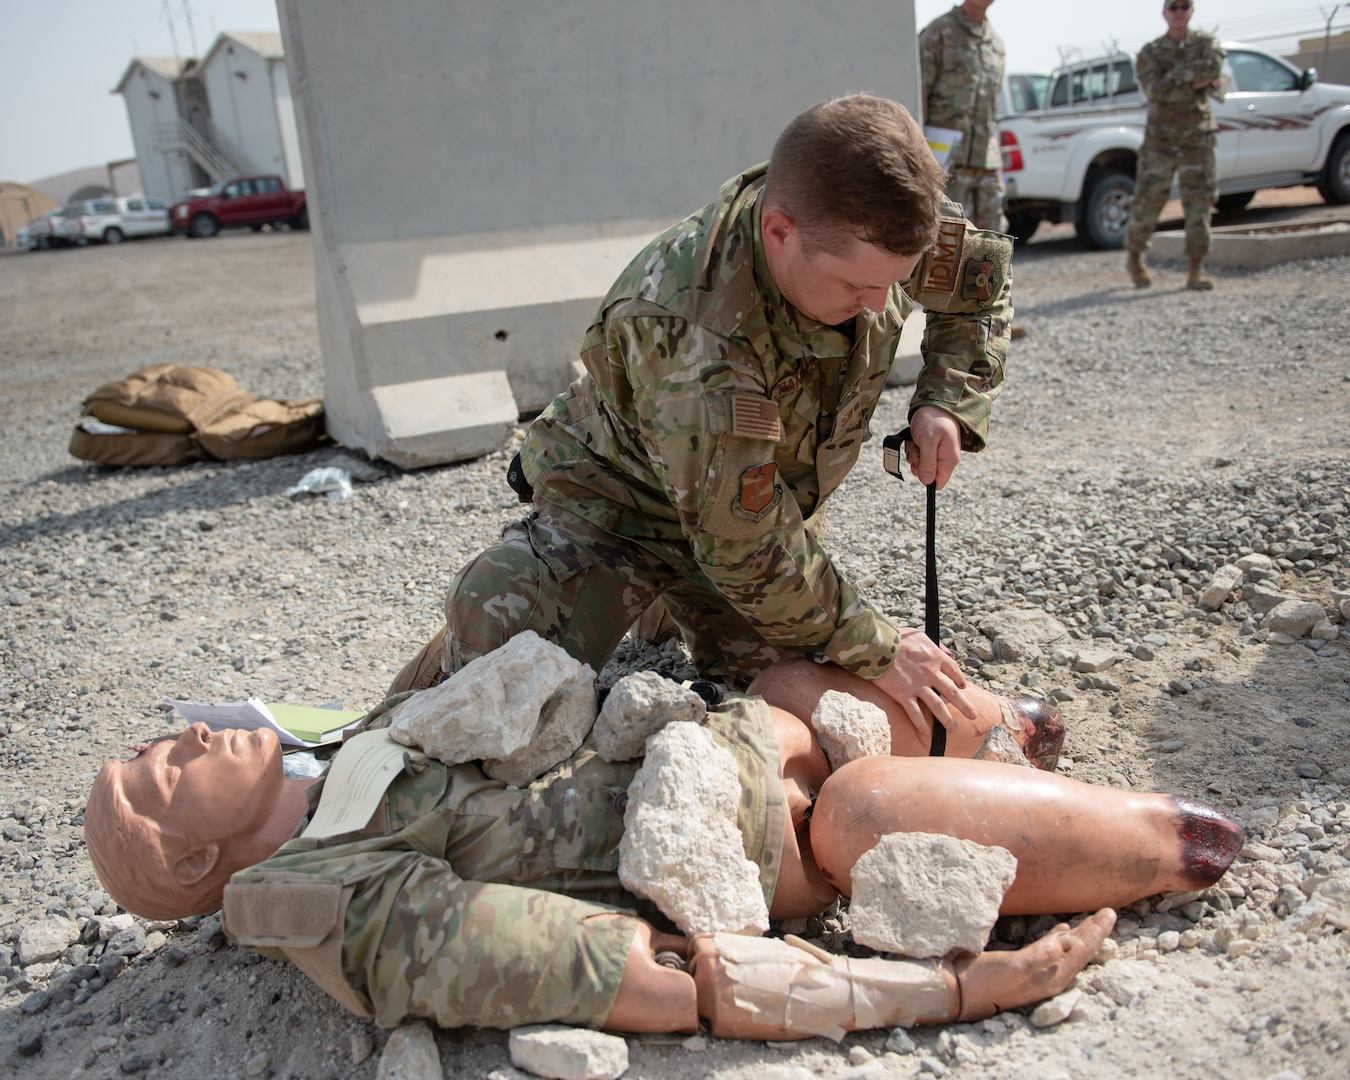 Tech. Sgt. Brett Randall, 380th Expeditionary Medical Group independent duty medical technician, applies a tourniquet during a large first responder exercise Sept. 24, 2019, at Al Dhafra Air Base, United Arab Emirates. A variety of agencies including medics, firefighters and security forces defenders participated in the exercise to test their readiness, knowledge of emergency procedures and interagency cooperation amongst the wing's first responders. (U.S. Air Force photo by Staff Sgt. Chris Thornbury)